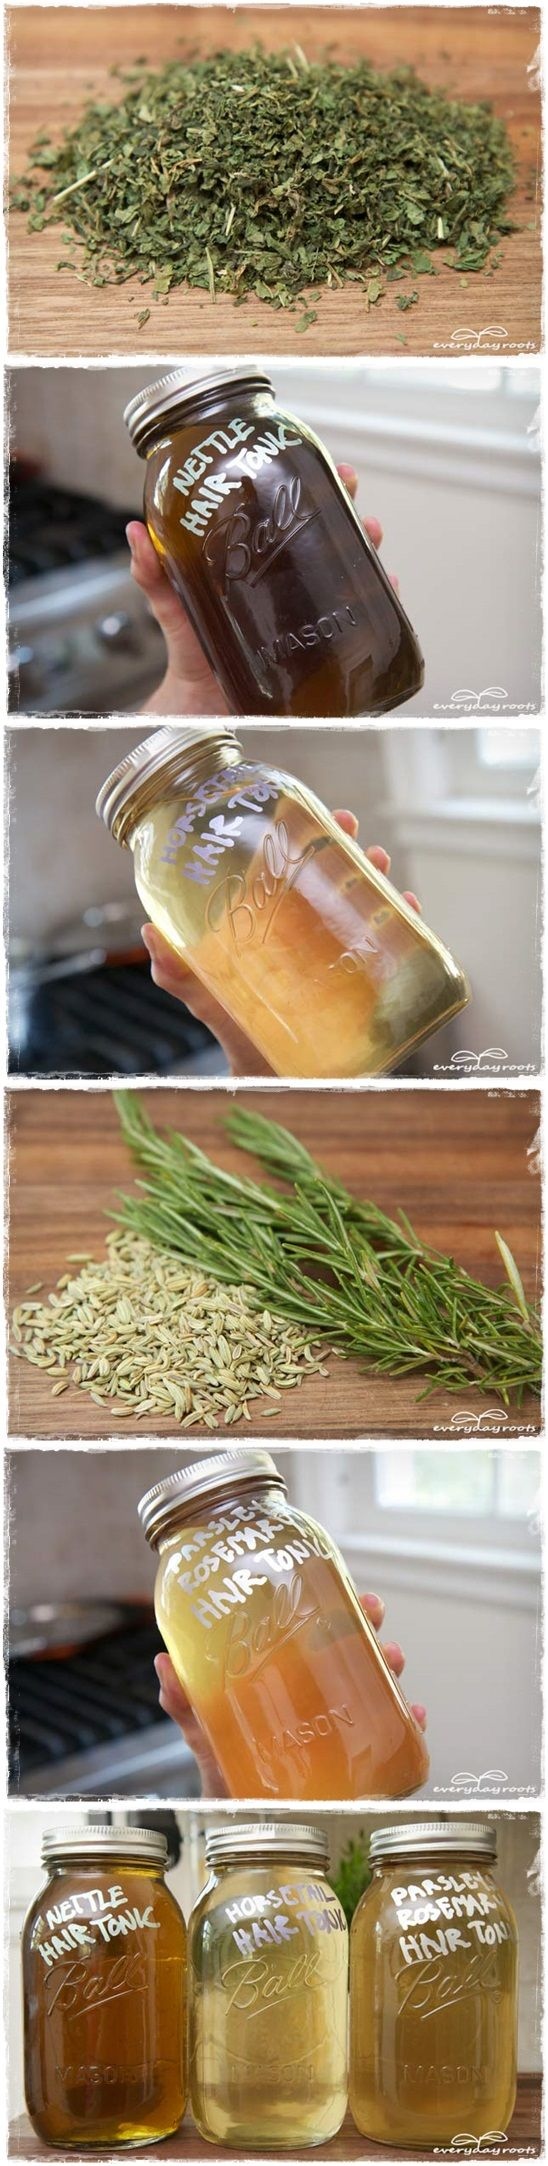 Use these 3 homemade hair toner made only with natural herbs and you will have the strong, healthy and shiny hair you desired. Enjoy!